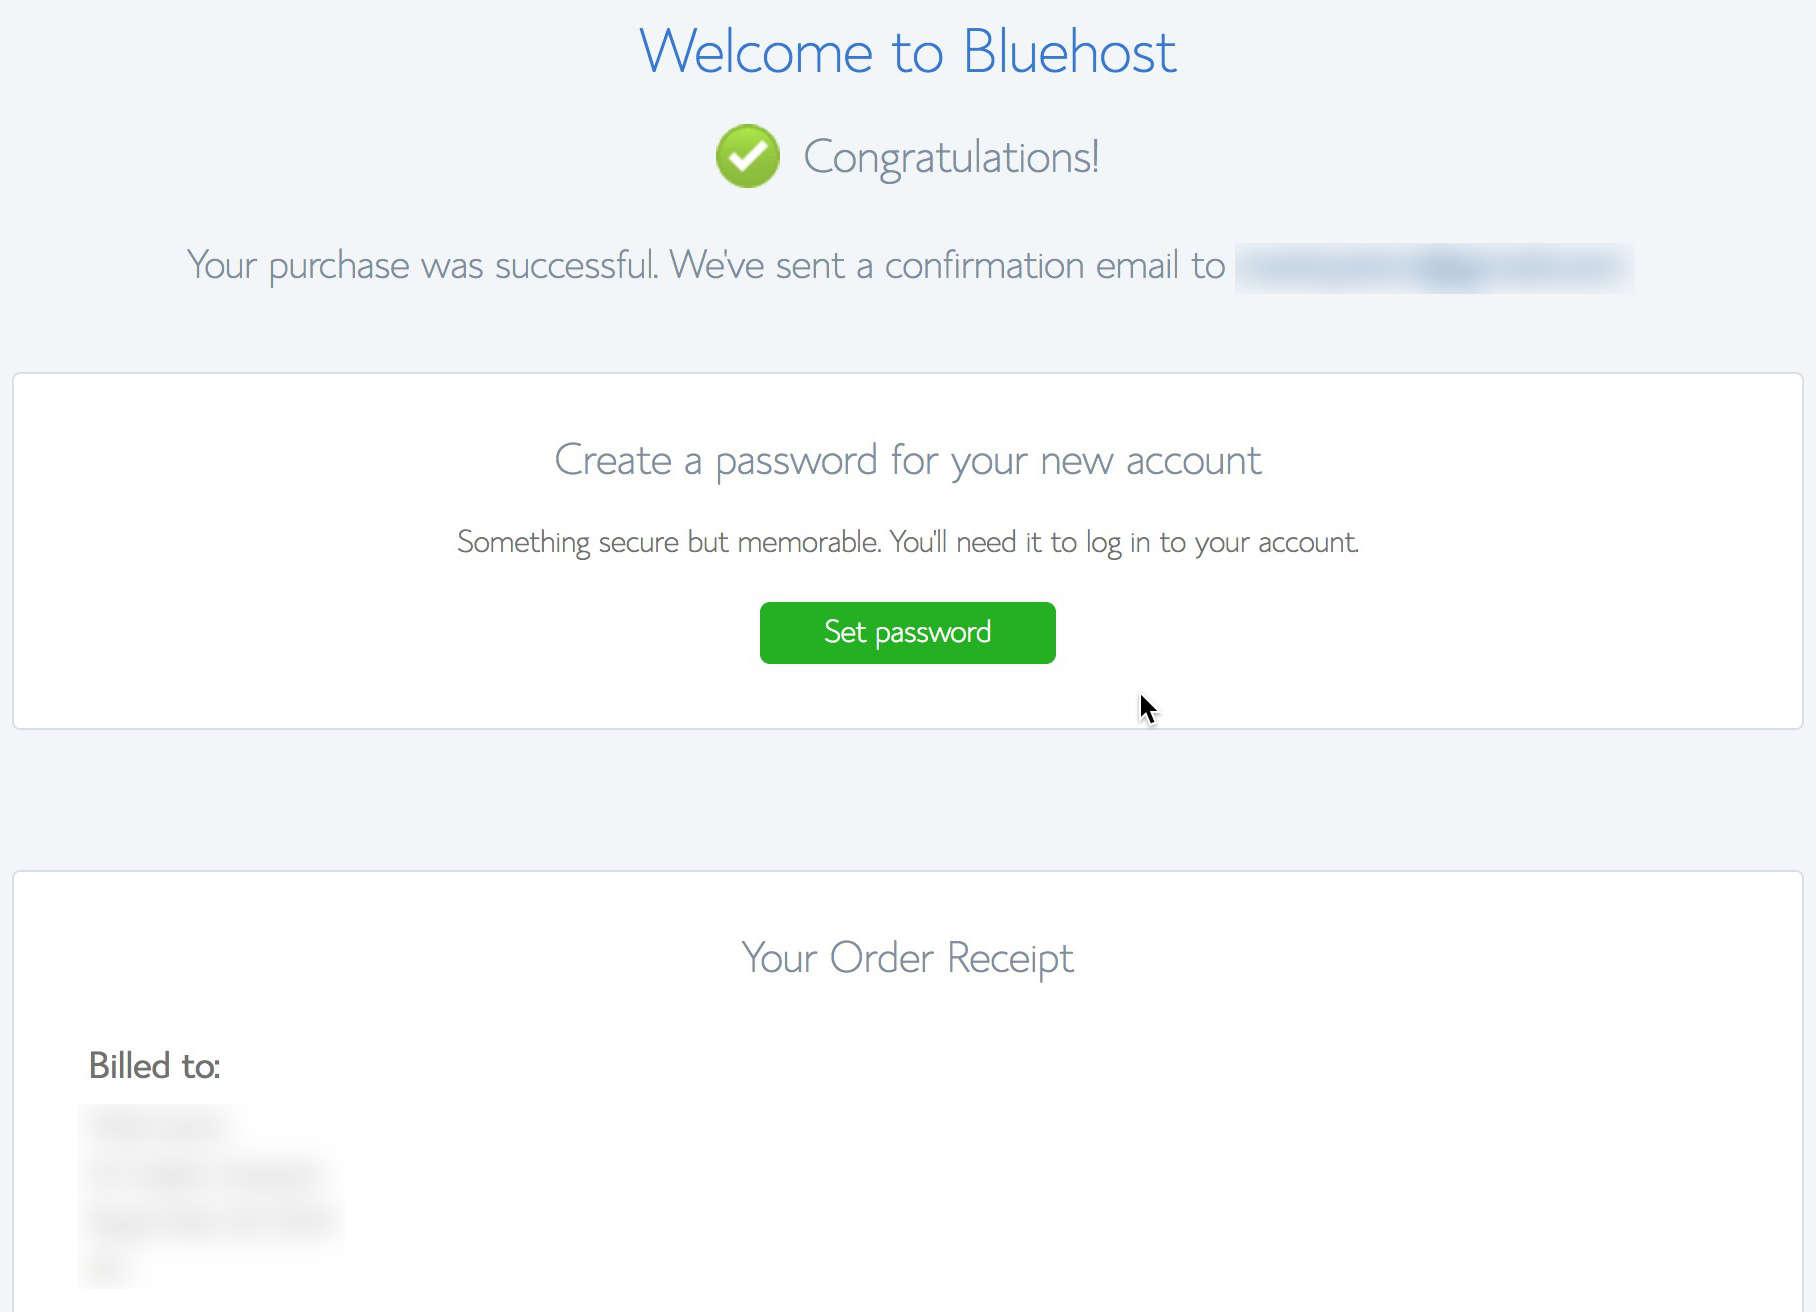 Bluehost will request that you set your login password once purchase is successful.